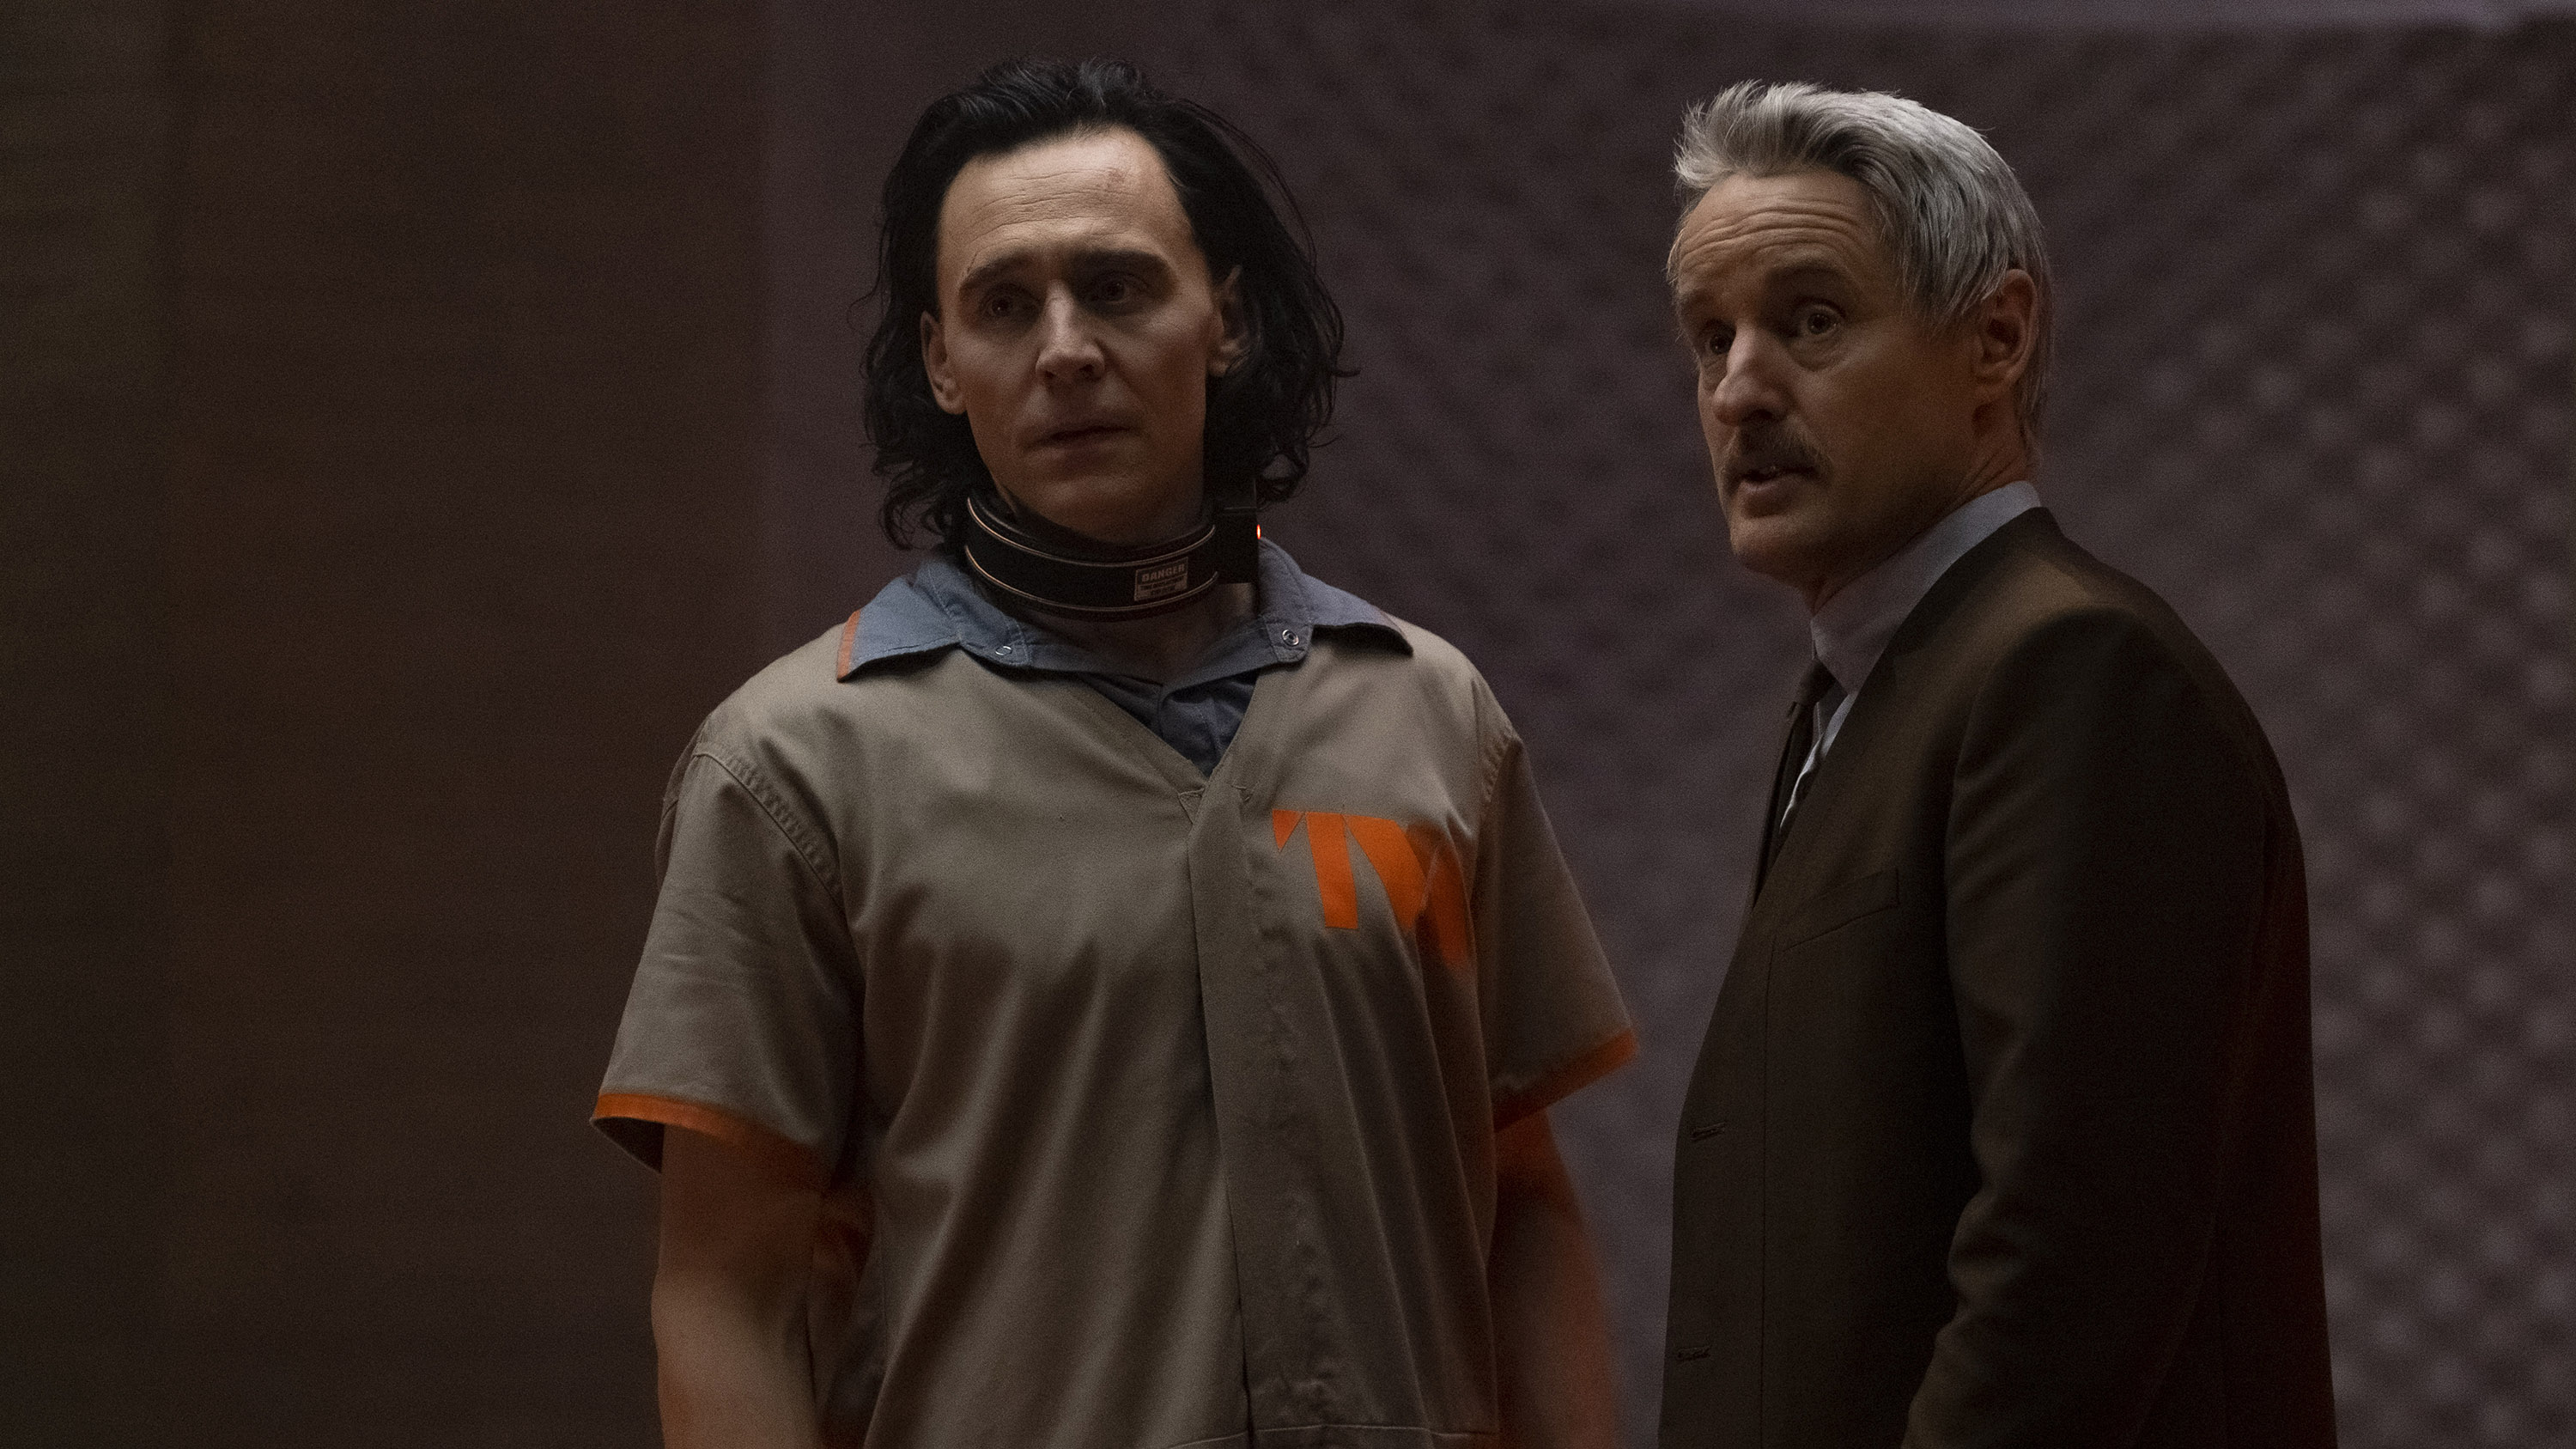 Loki is in trouble with Owen Wilson and his mustache in new 'Loki' trailer